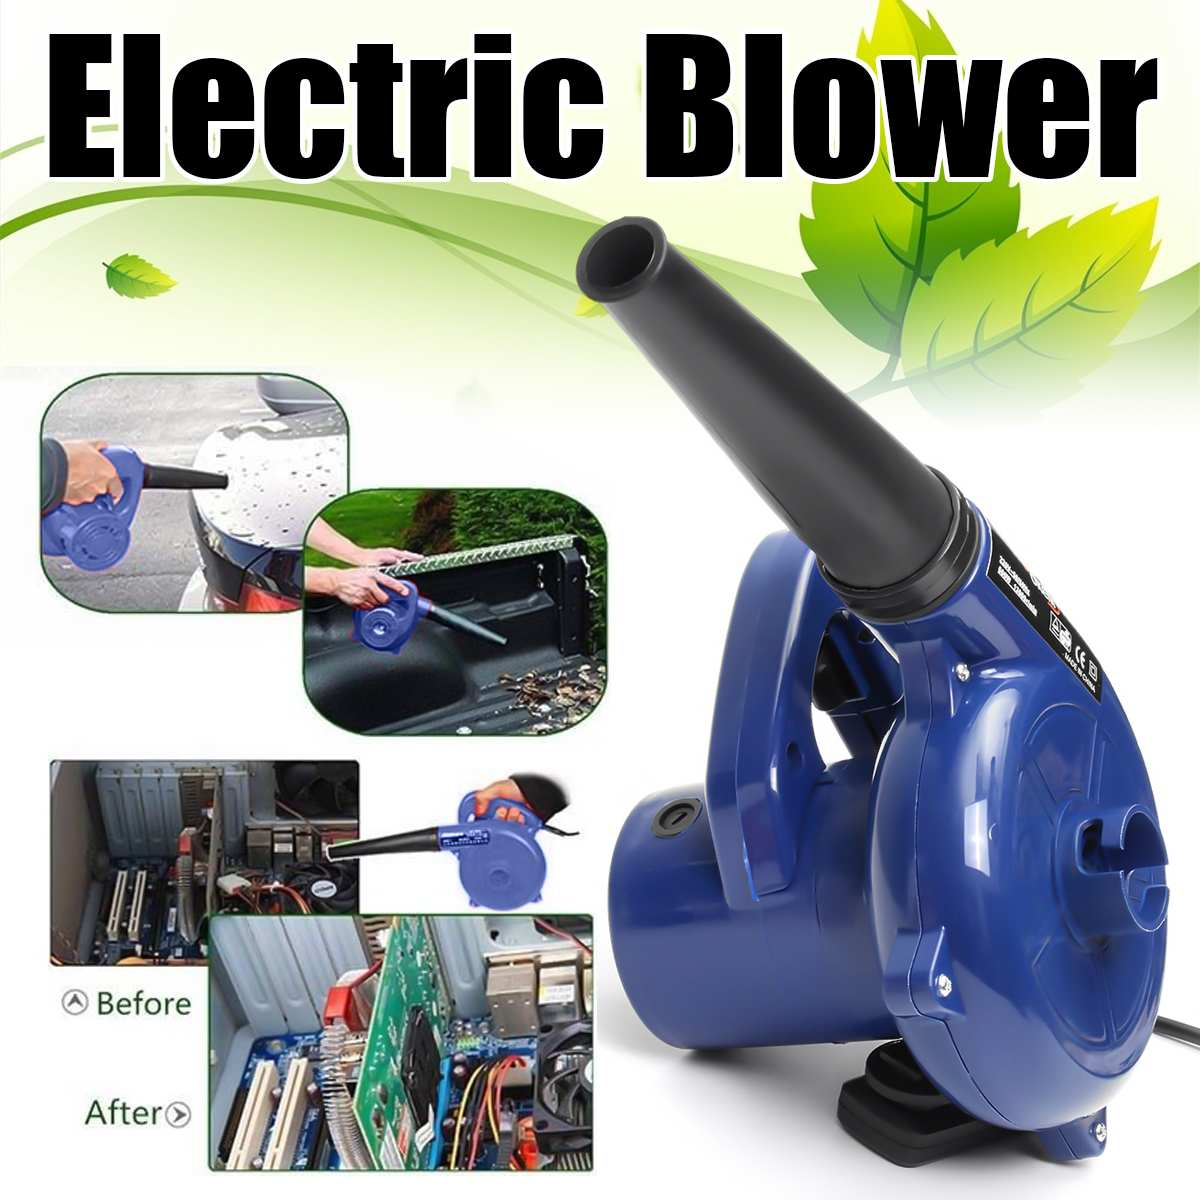 600W 220V Electric Handheld Blower Computer Dust Collector Fan Blowing Dust Vacuum Cleaner Family Garden Office Applicable